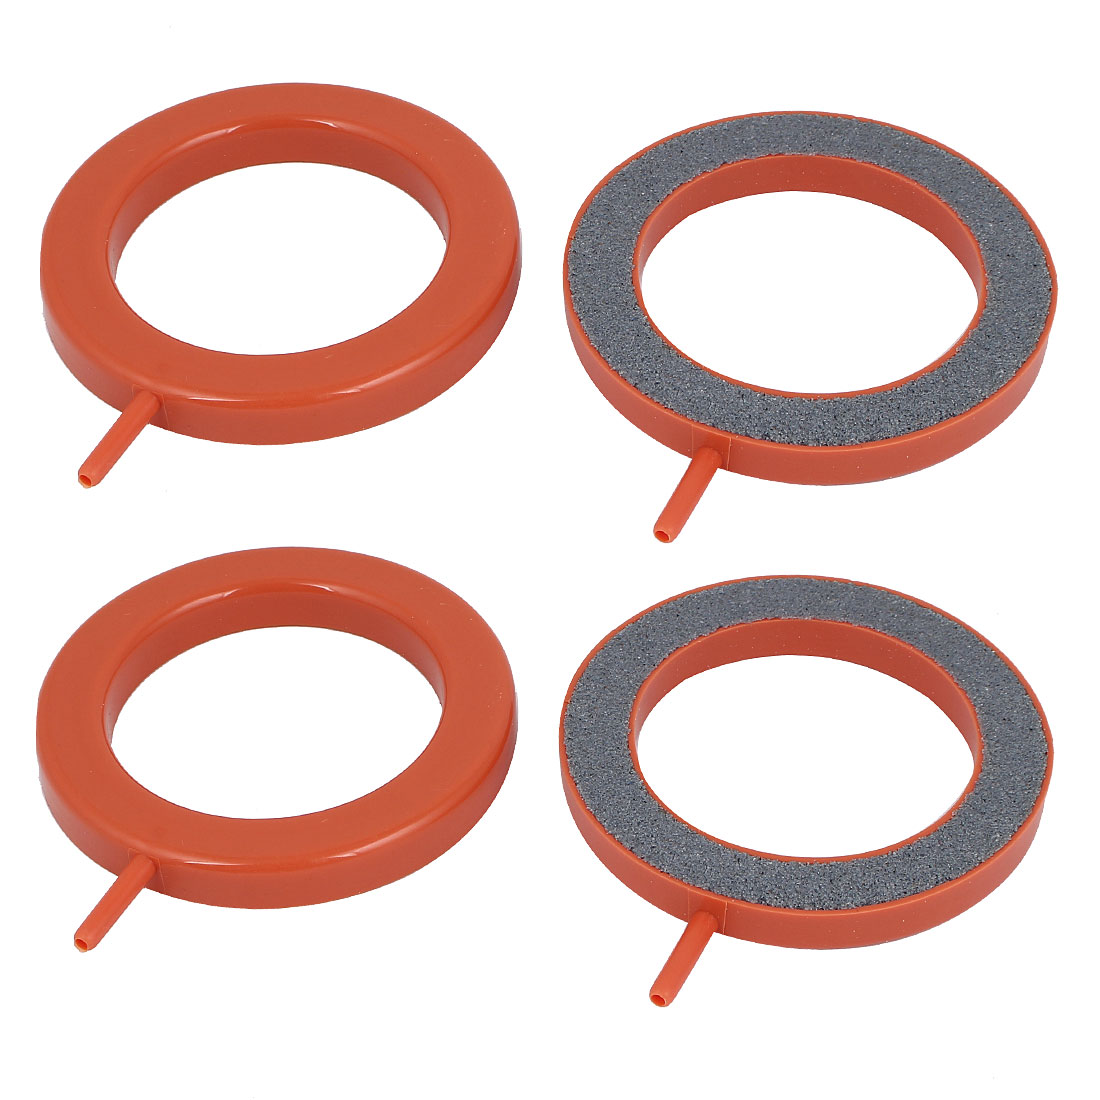 3mm Air Inlet Dia Round Bubble Airstone Orange Gray 4 Pcs for Aquarium Fish Tank